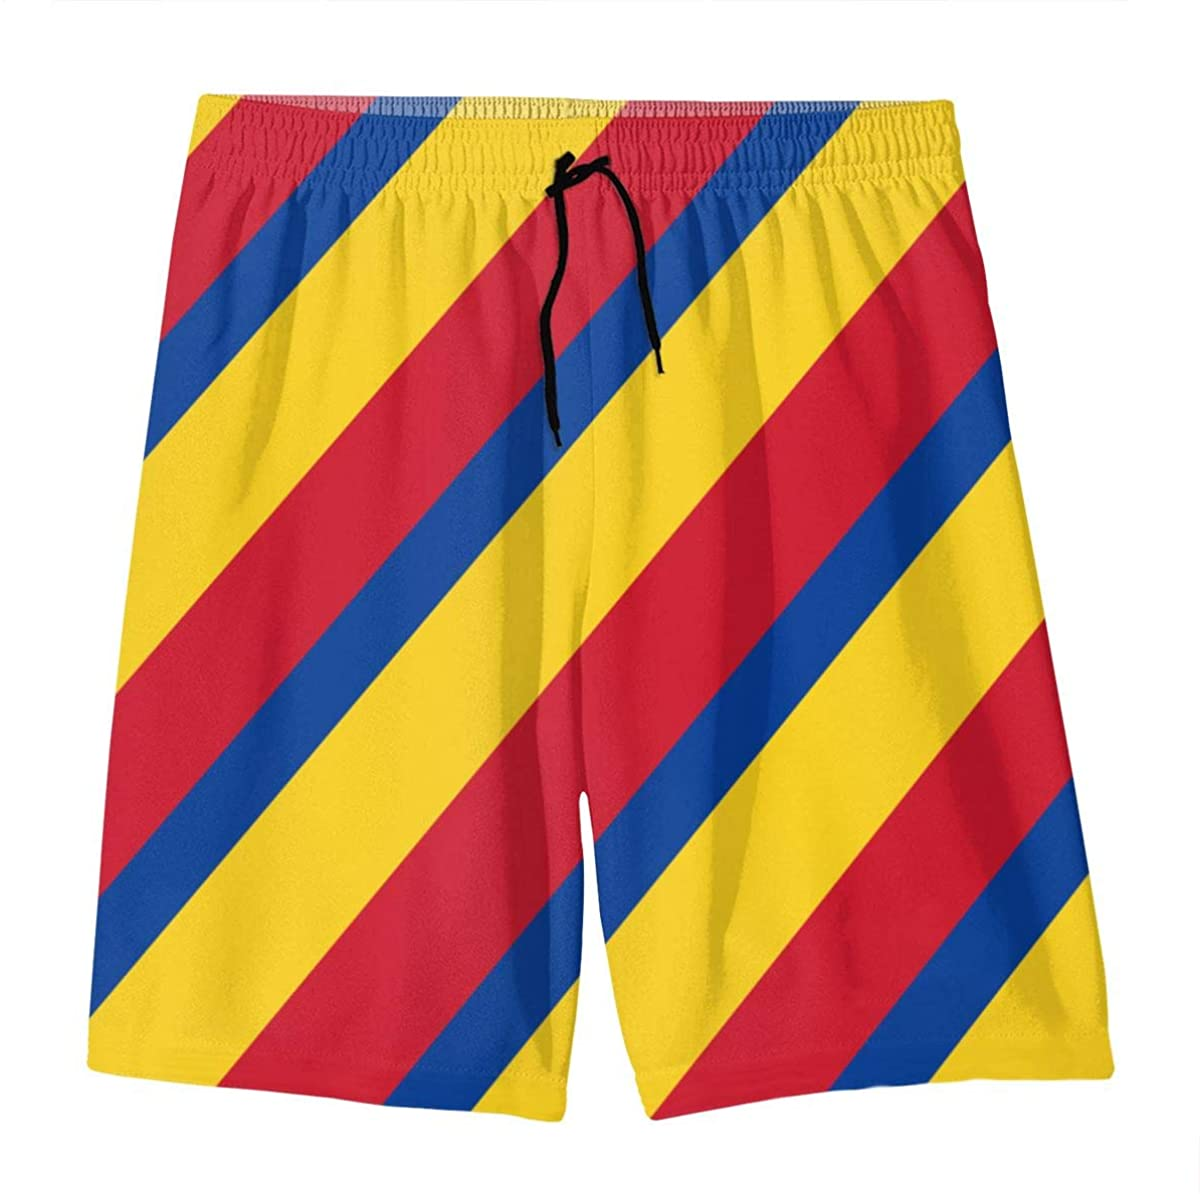 YOIGNG Colorful Colombian Flag Sexy Stripes Teens Swim Trunks Beach Shorts Surfing Board Quick Dry Bathing Suit